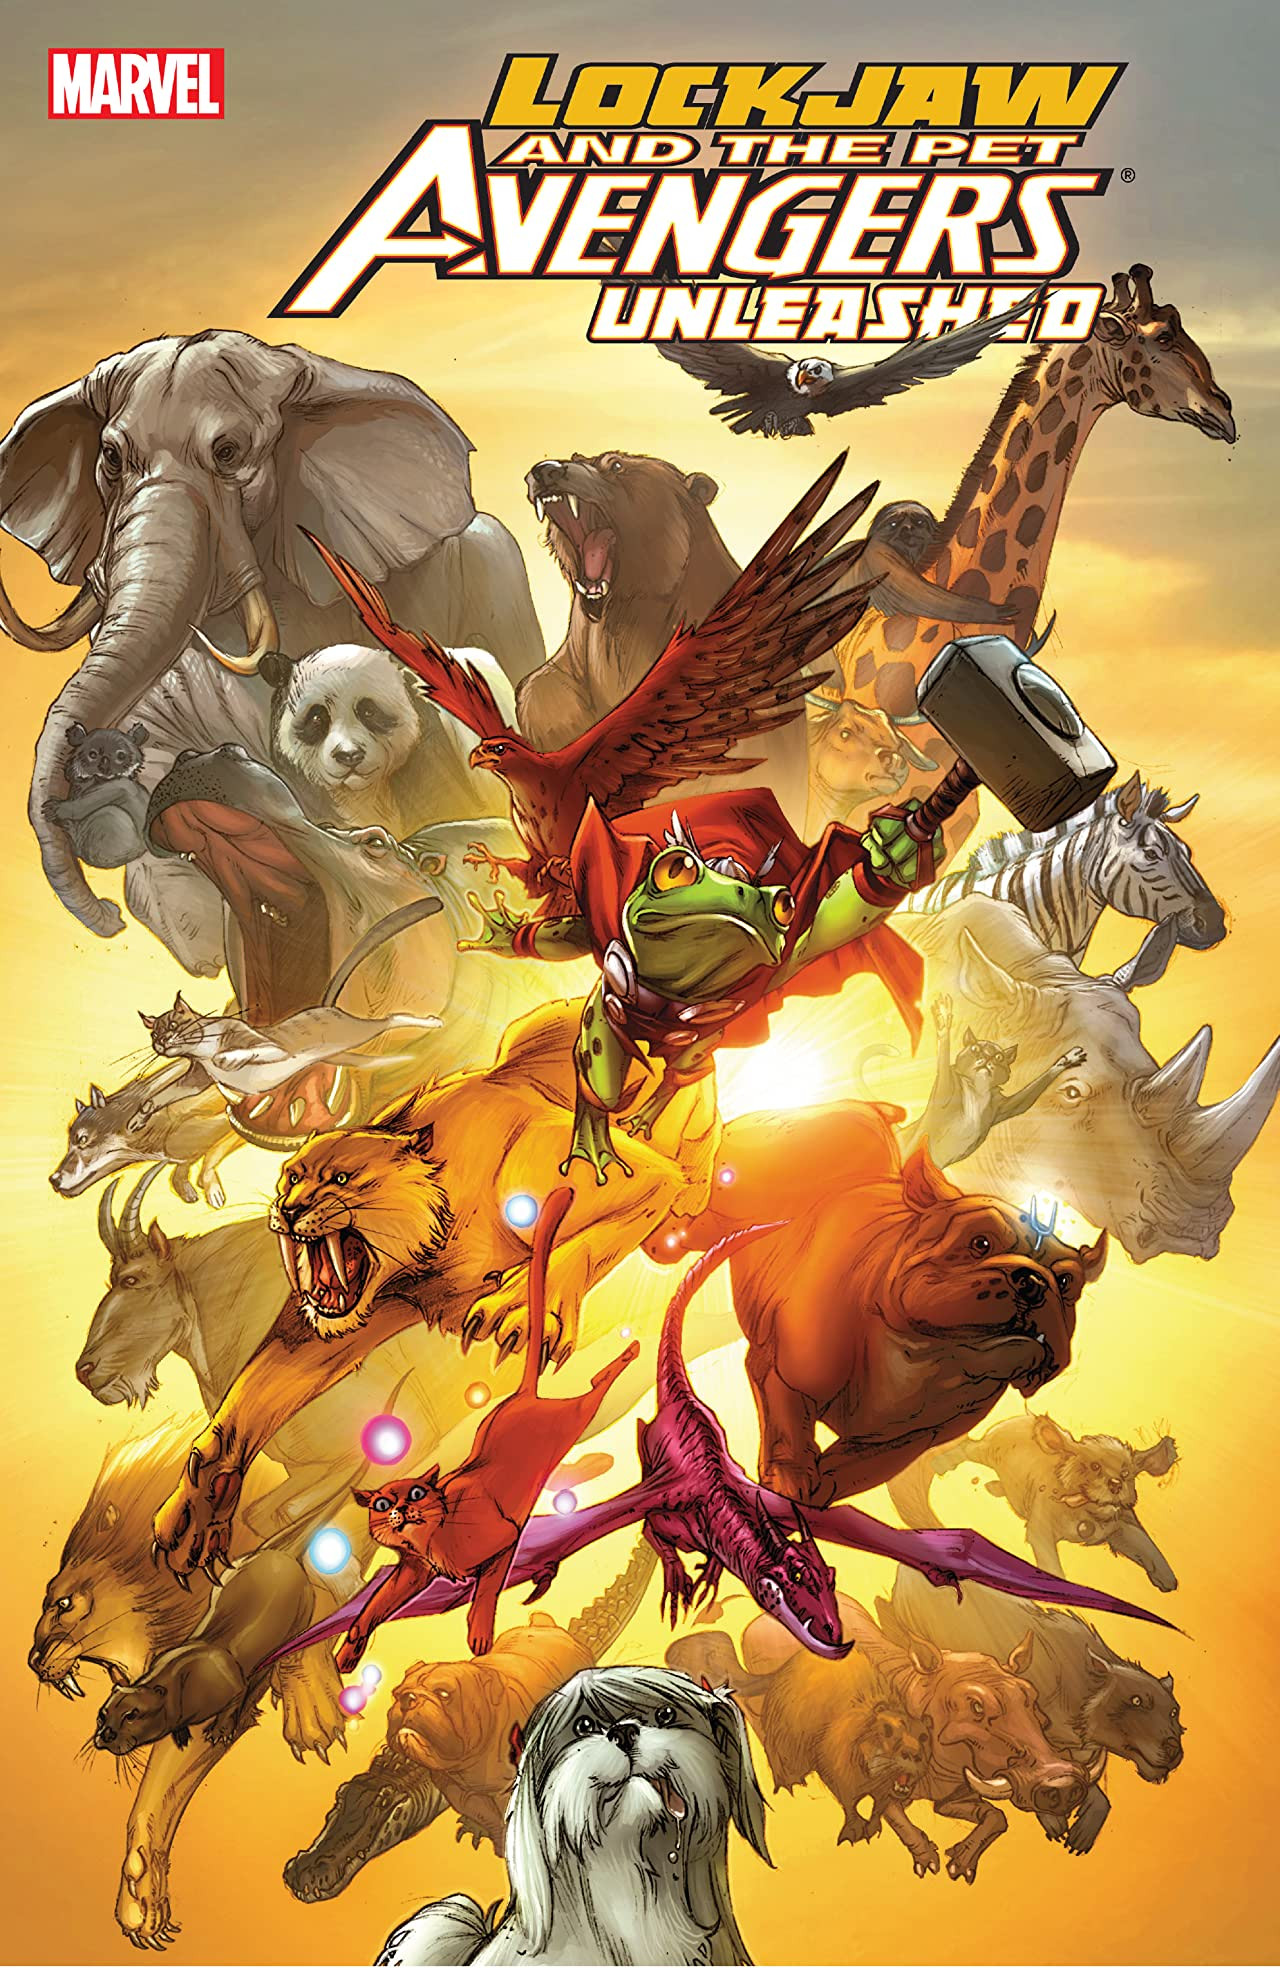 Lockjaw and the Pet Avengers Unleashed TPB Vol 1 1